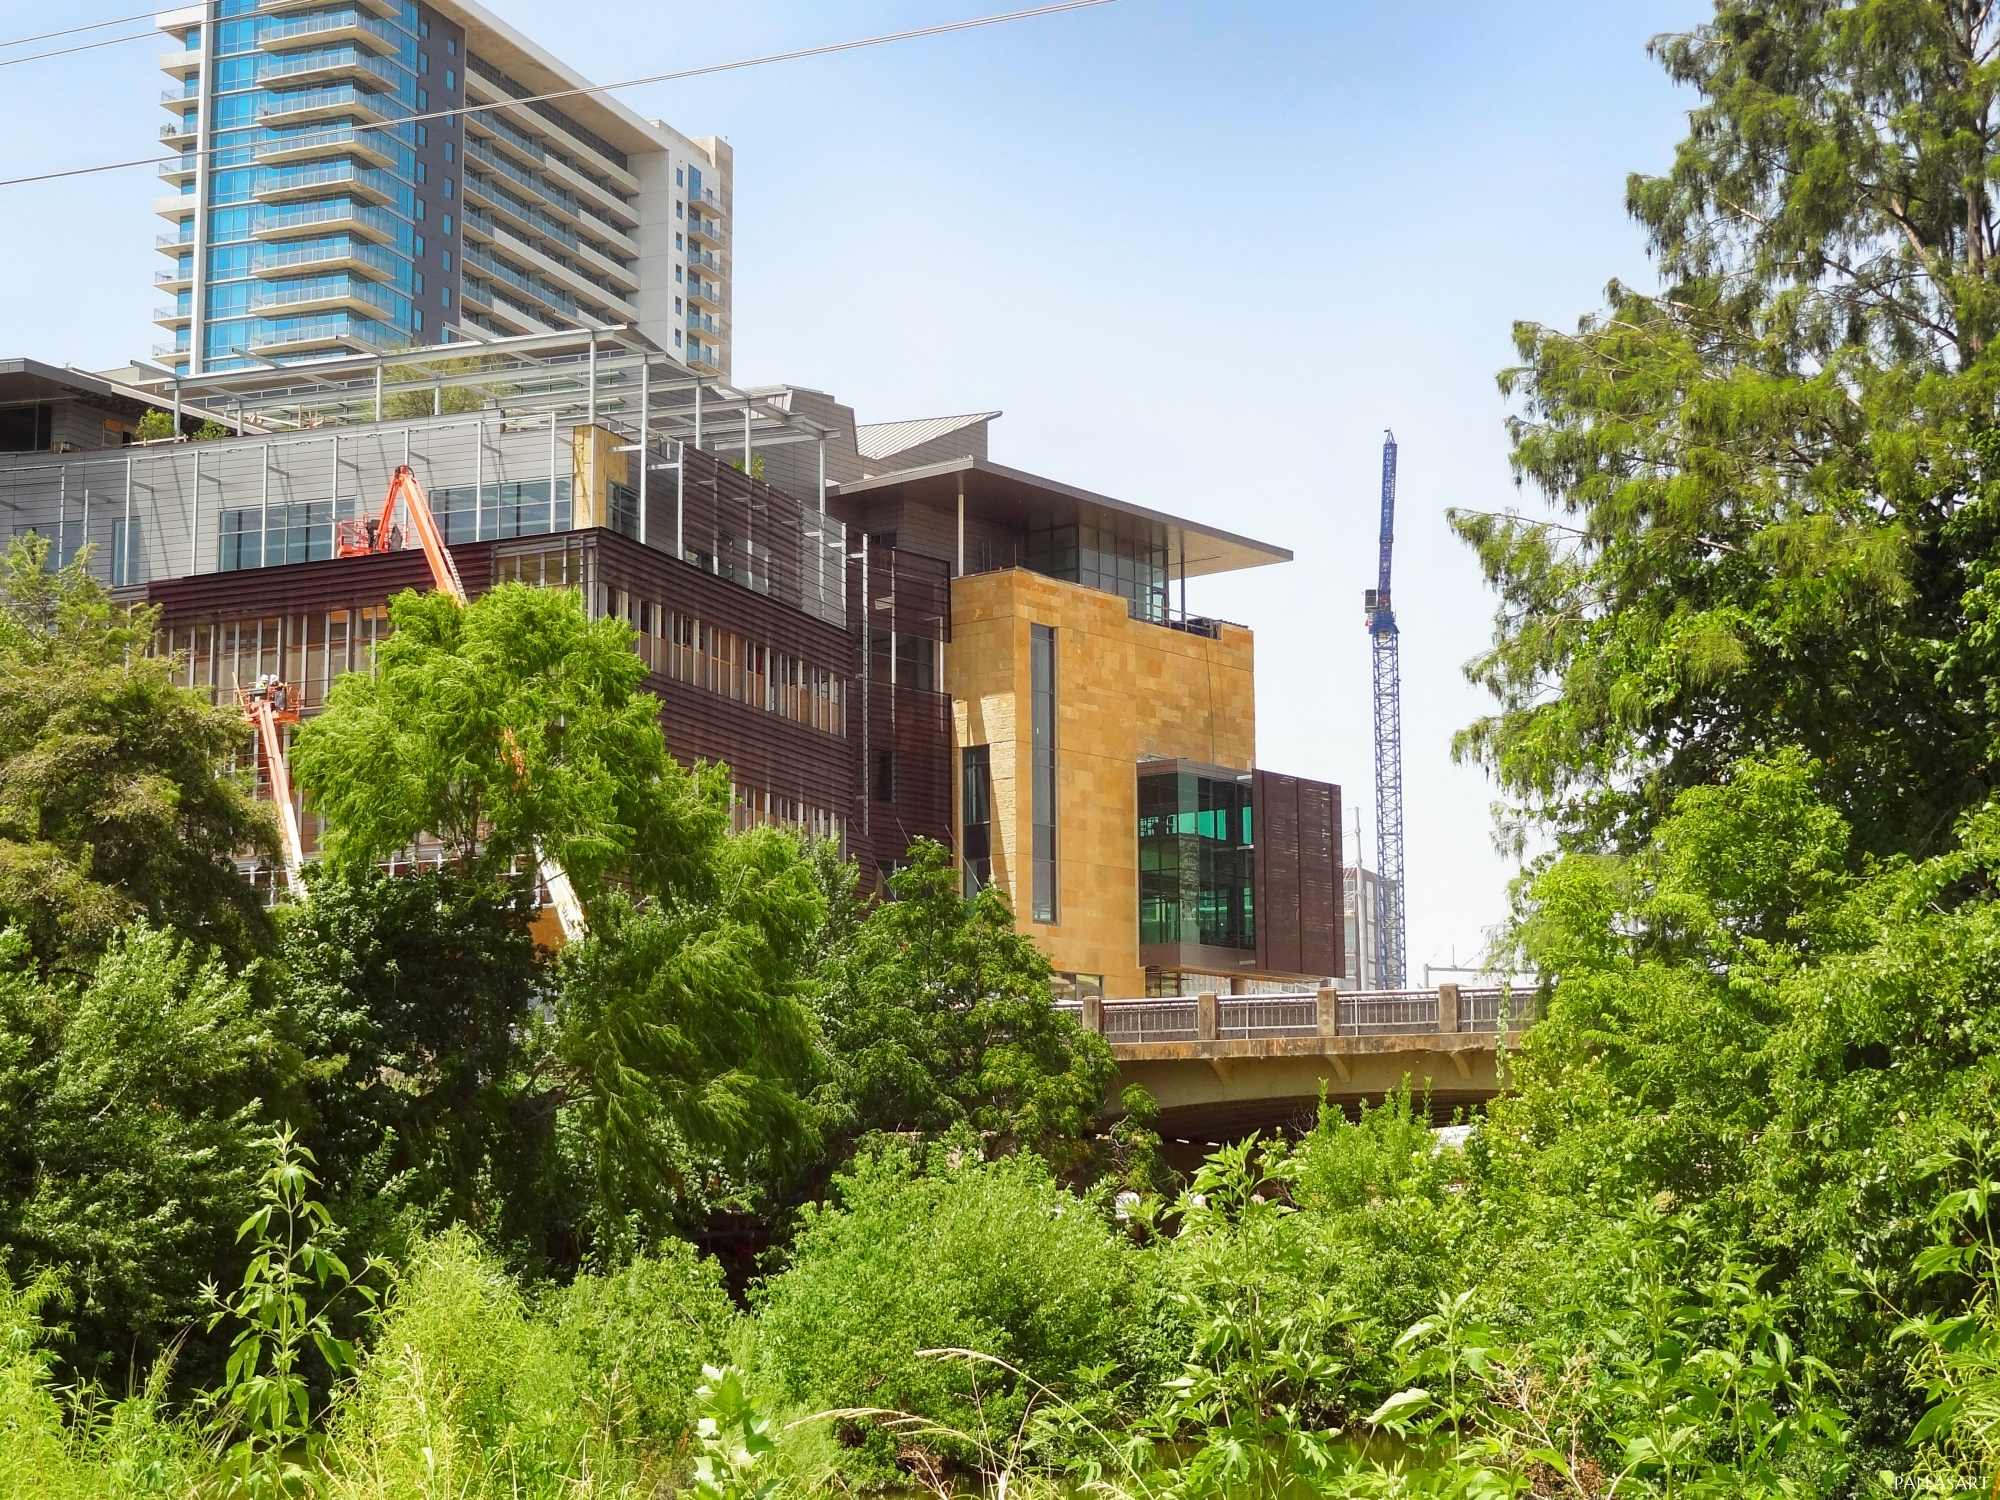 New Austin Central Library Under Construction